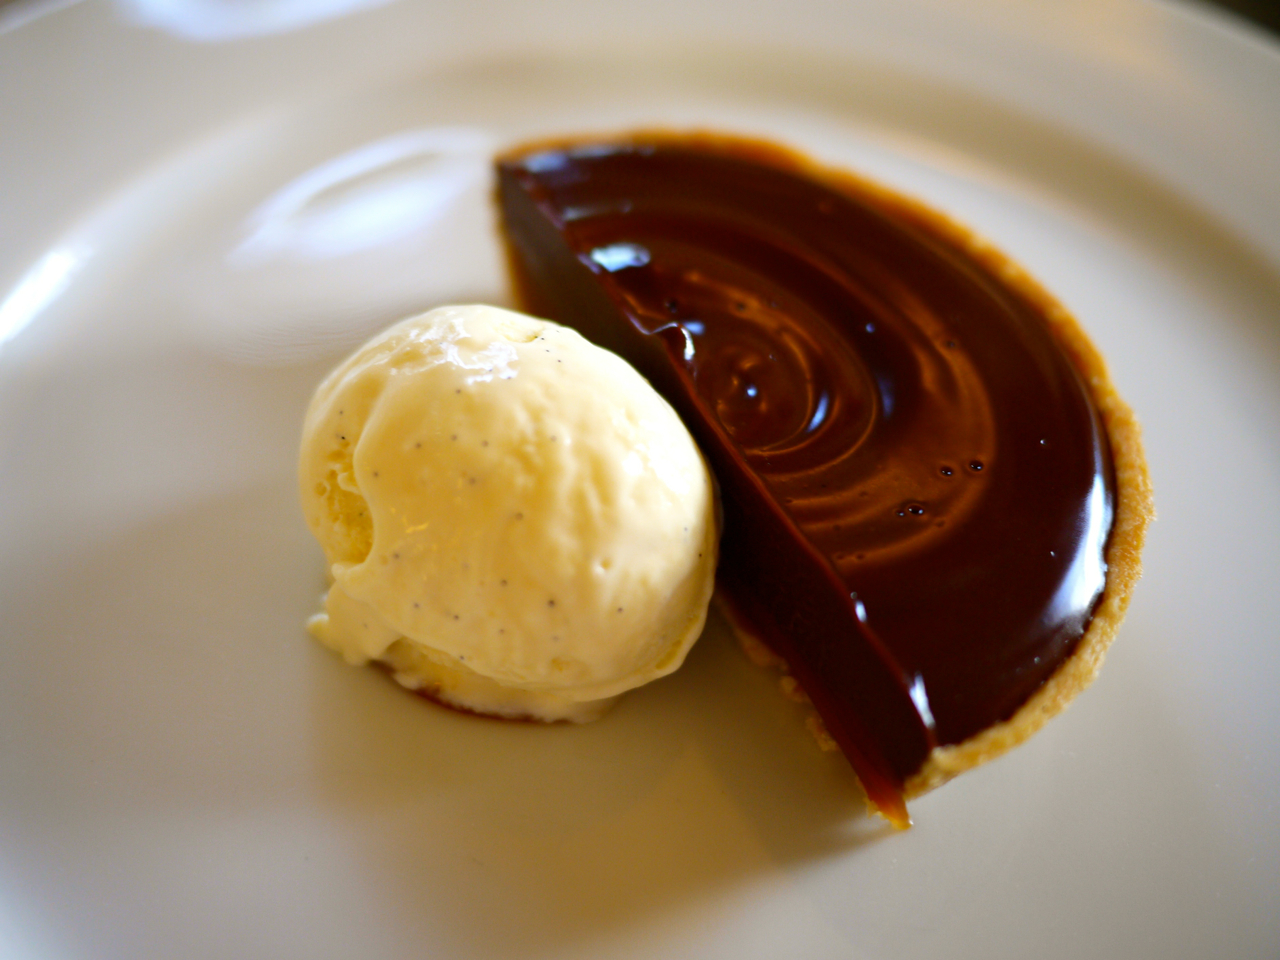 Chocolate and salted caramel tart with vanilla ice cream